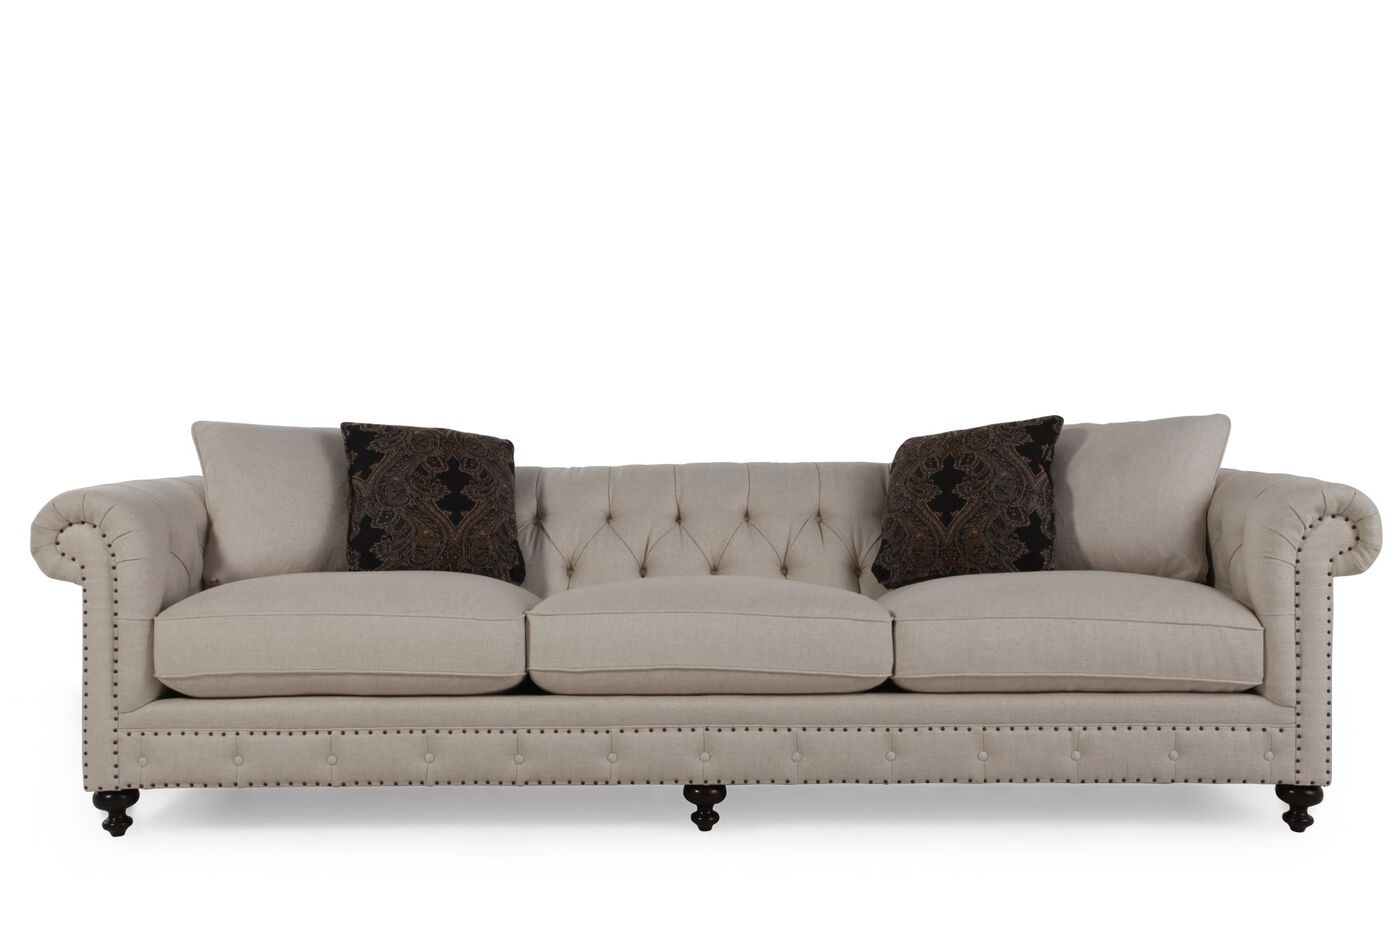 Bernhardt Riviera Large Sofa | Mathis Brothers Furniture